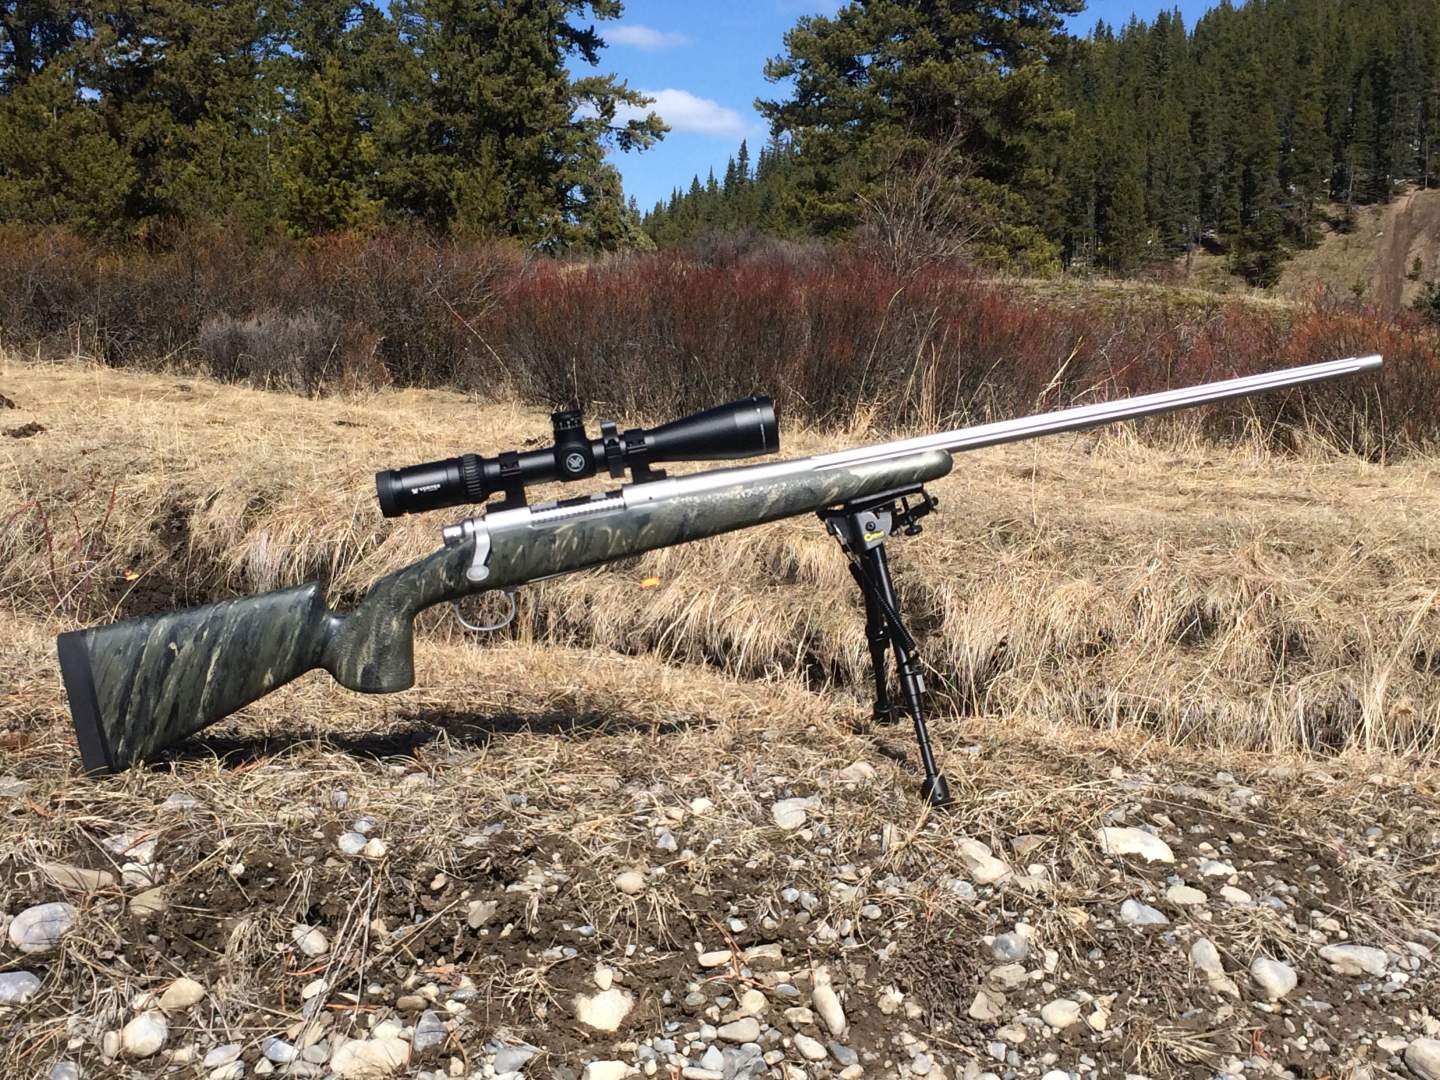 6 5 builds    let's see them | Page 2 | Long Range Hunting Forum